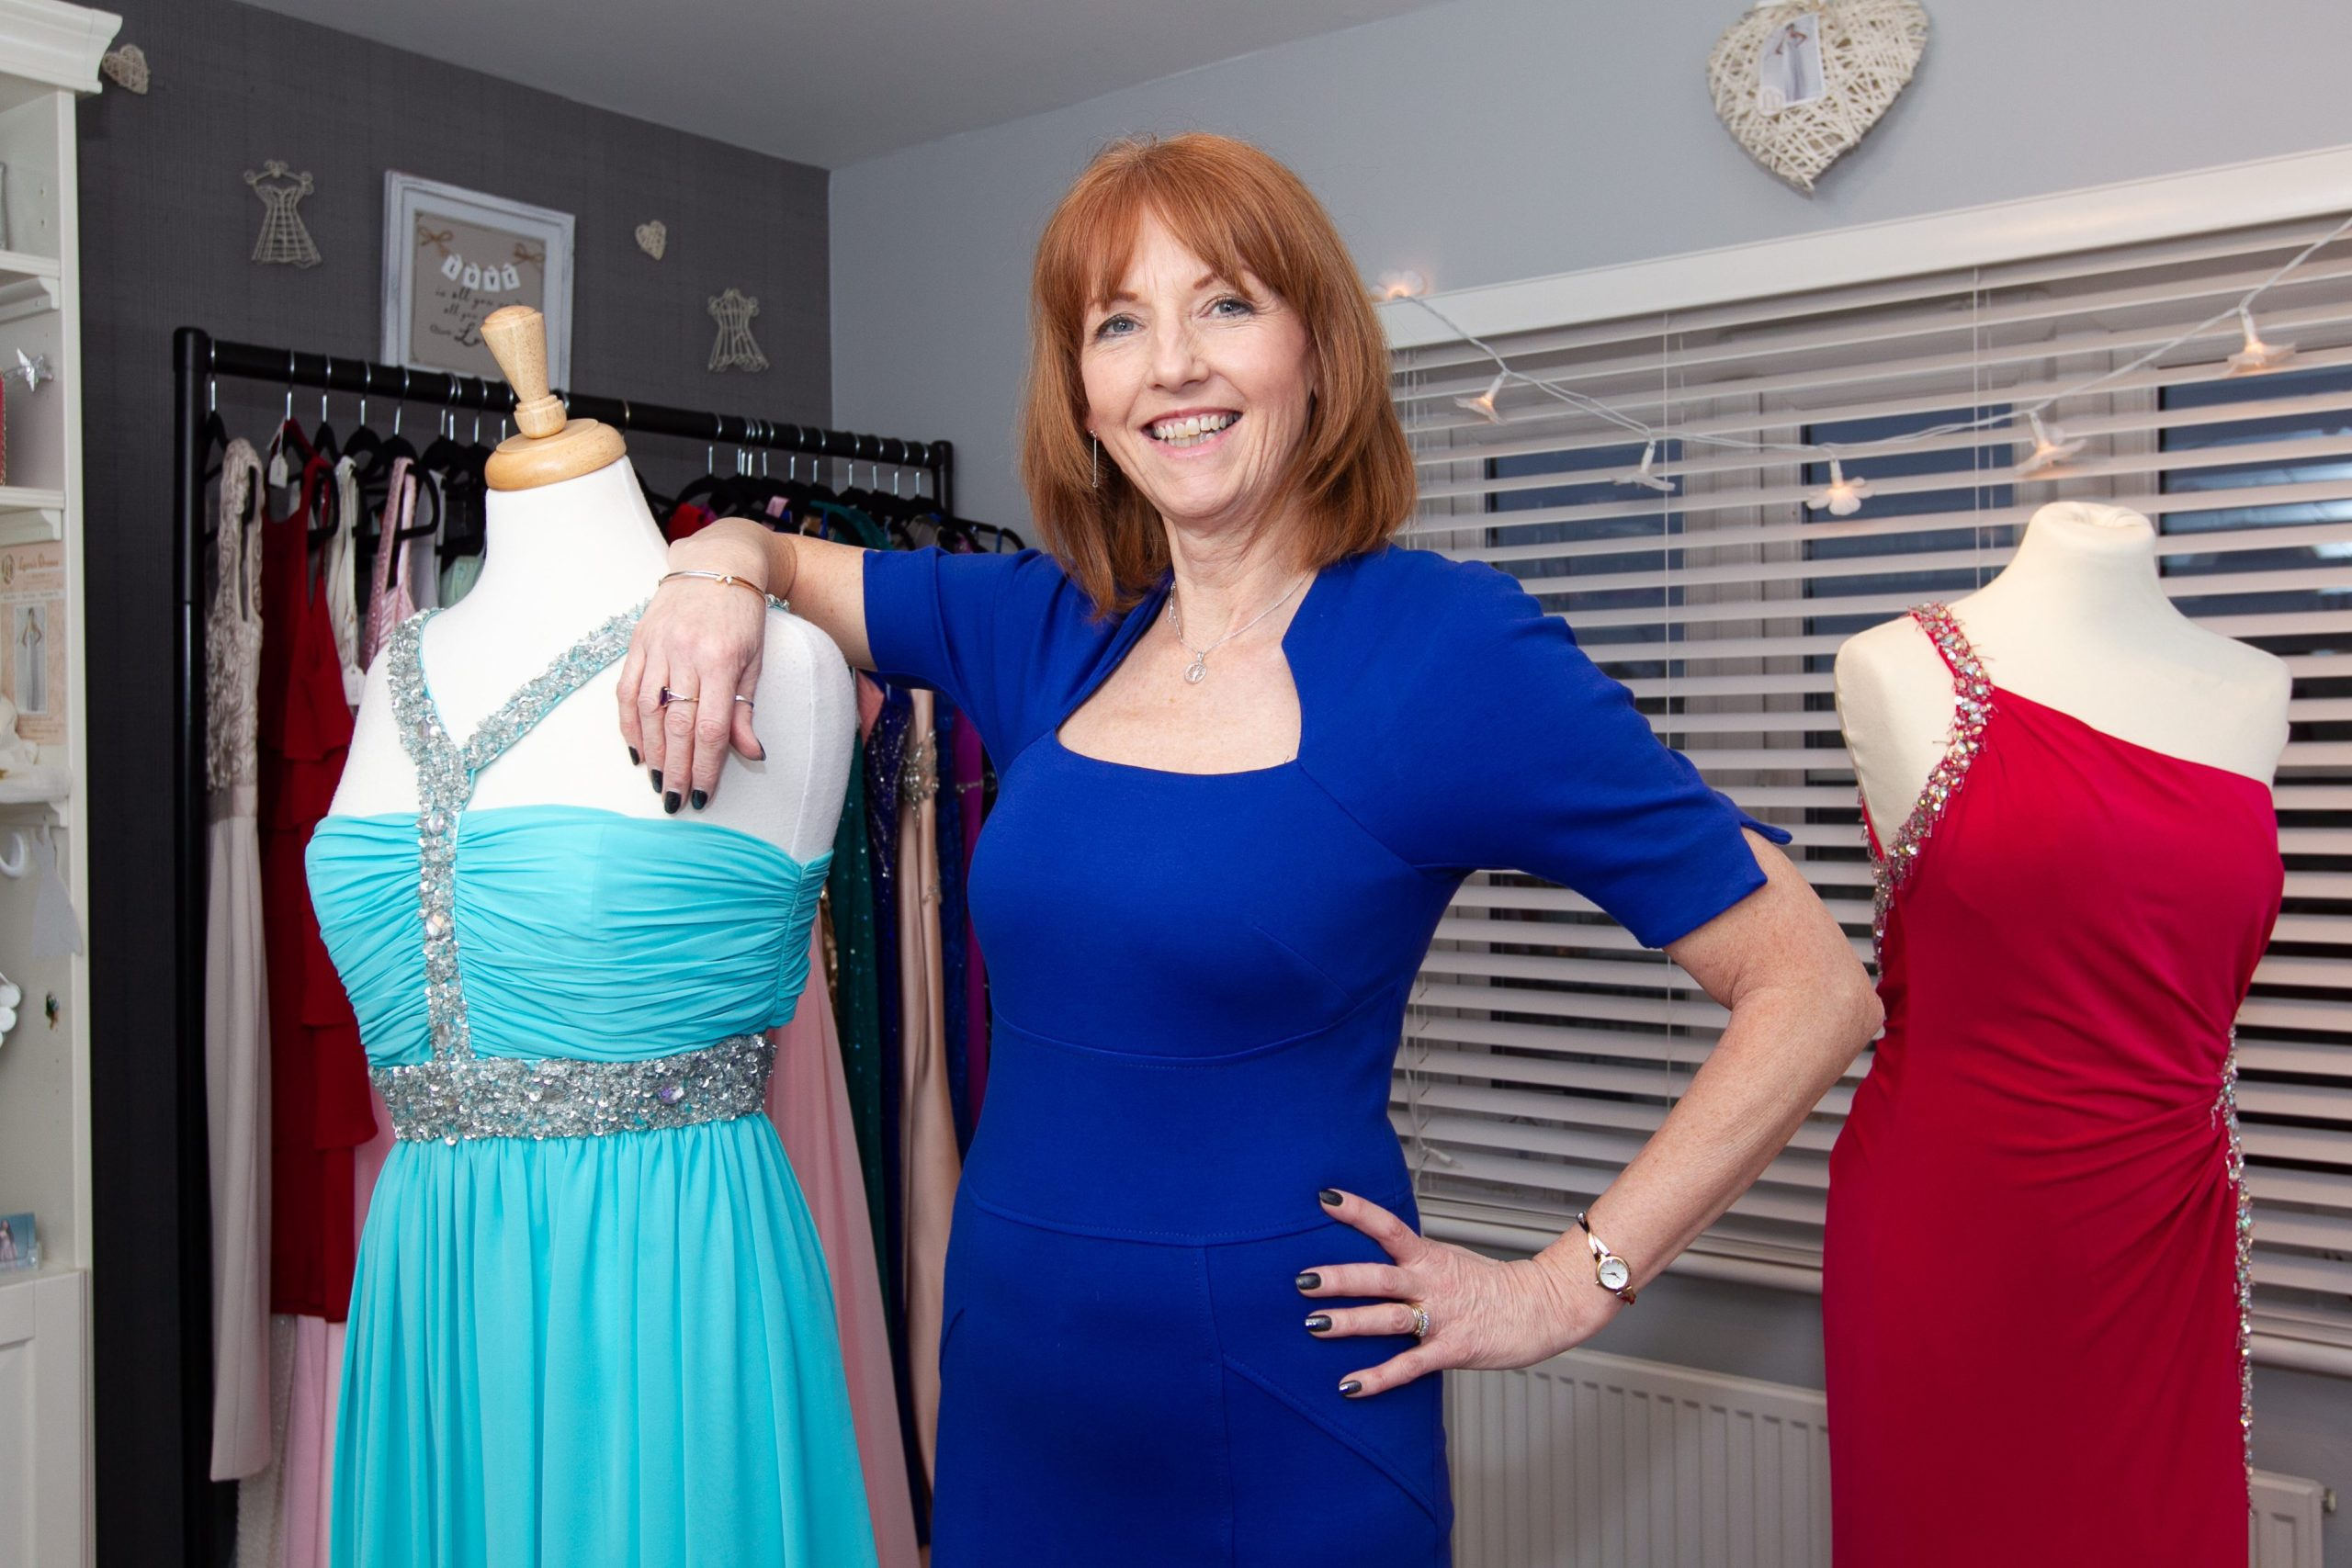 Laura McKinnon, who runs Laura's Dresses